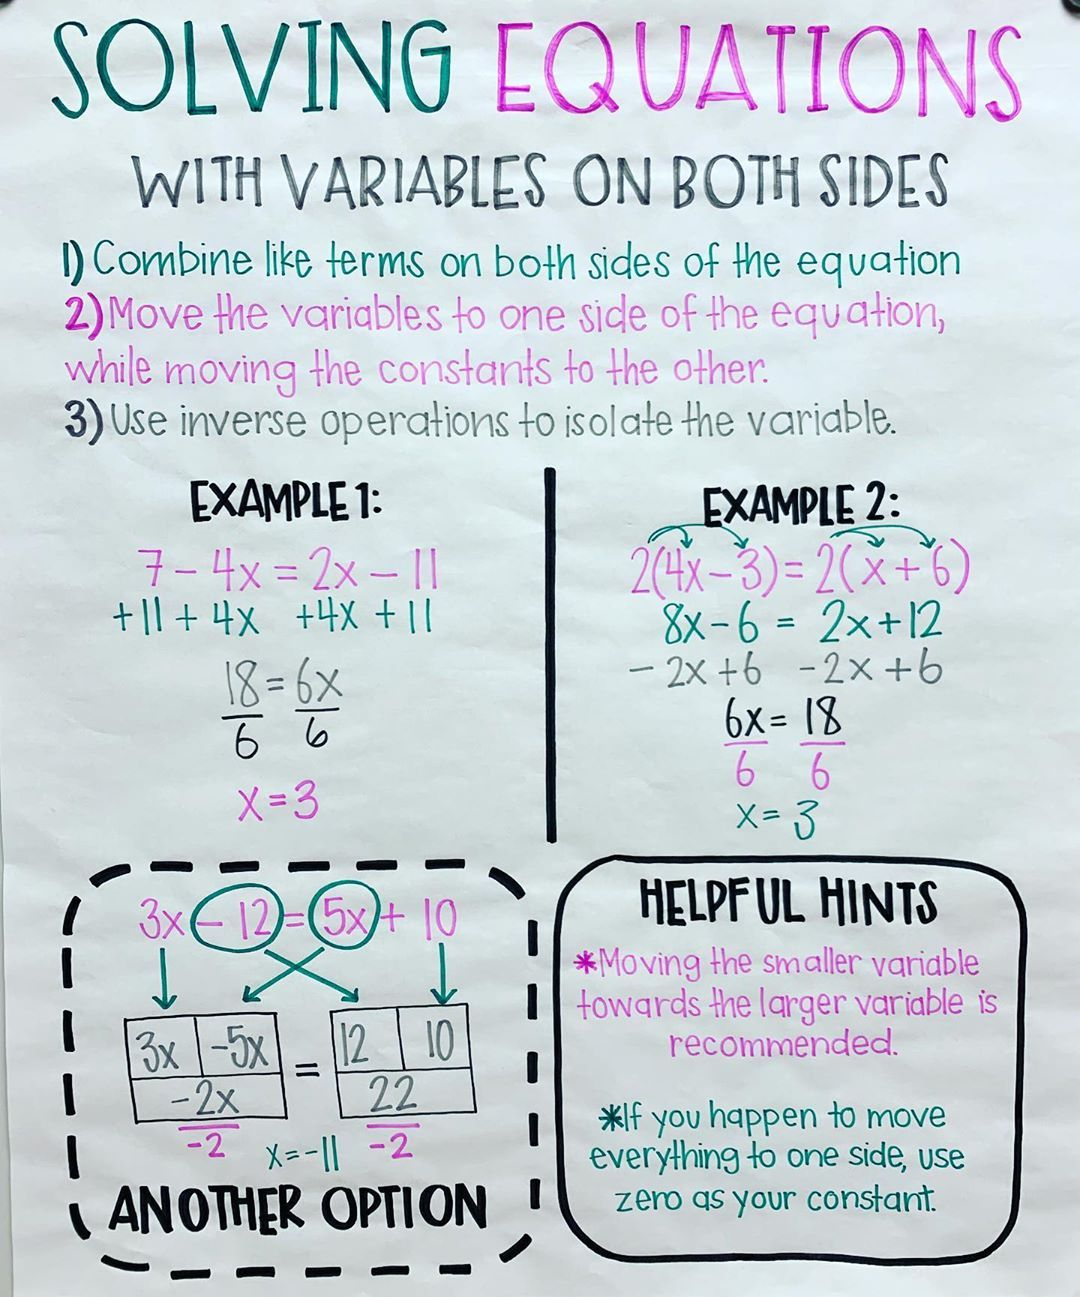 Smartpugteaching On Instagram Day 18 Math 8 Equations Equations And More Equations Middle School Math Anchor Charts Solving Equations Math Anchor Charts One step equations with addition and